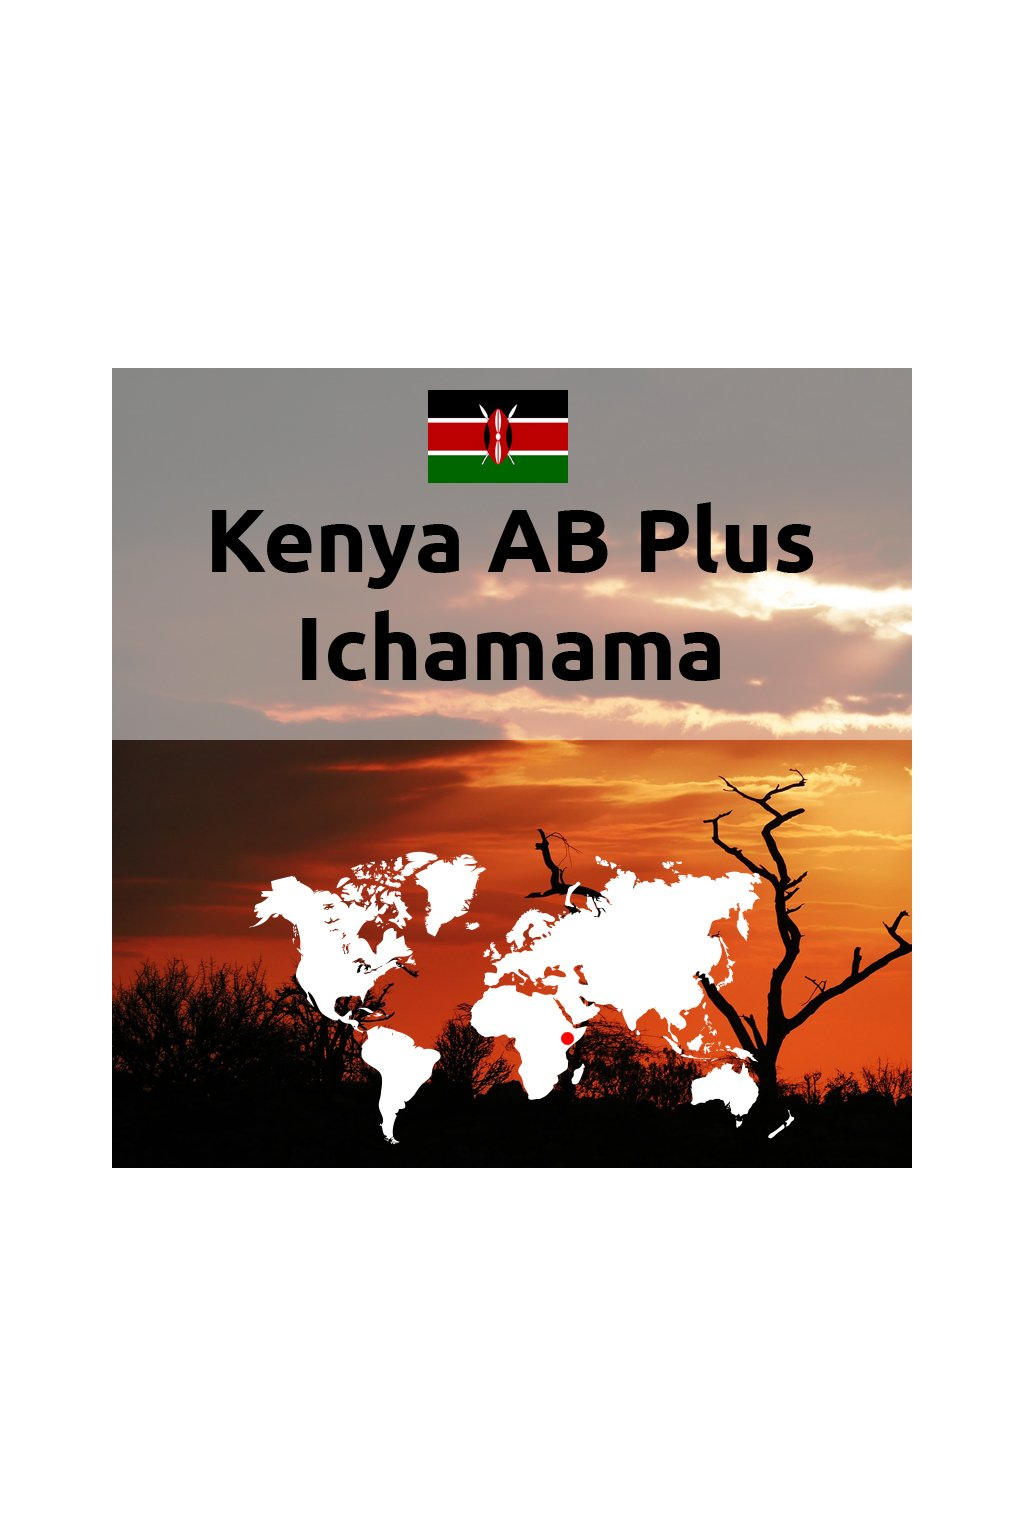 Kenya AB Plus Ichamara